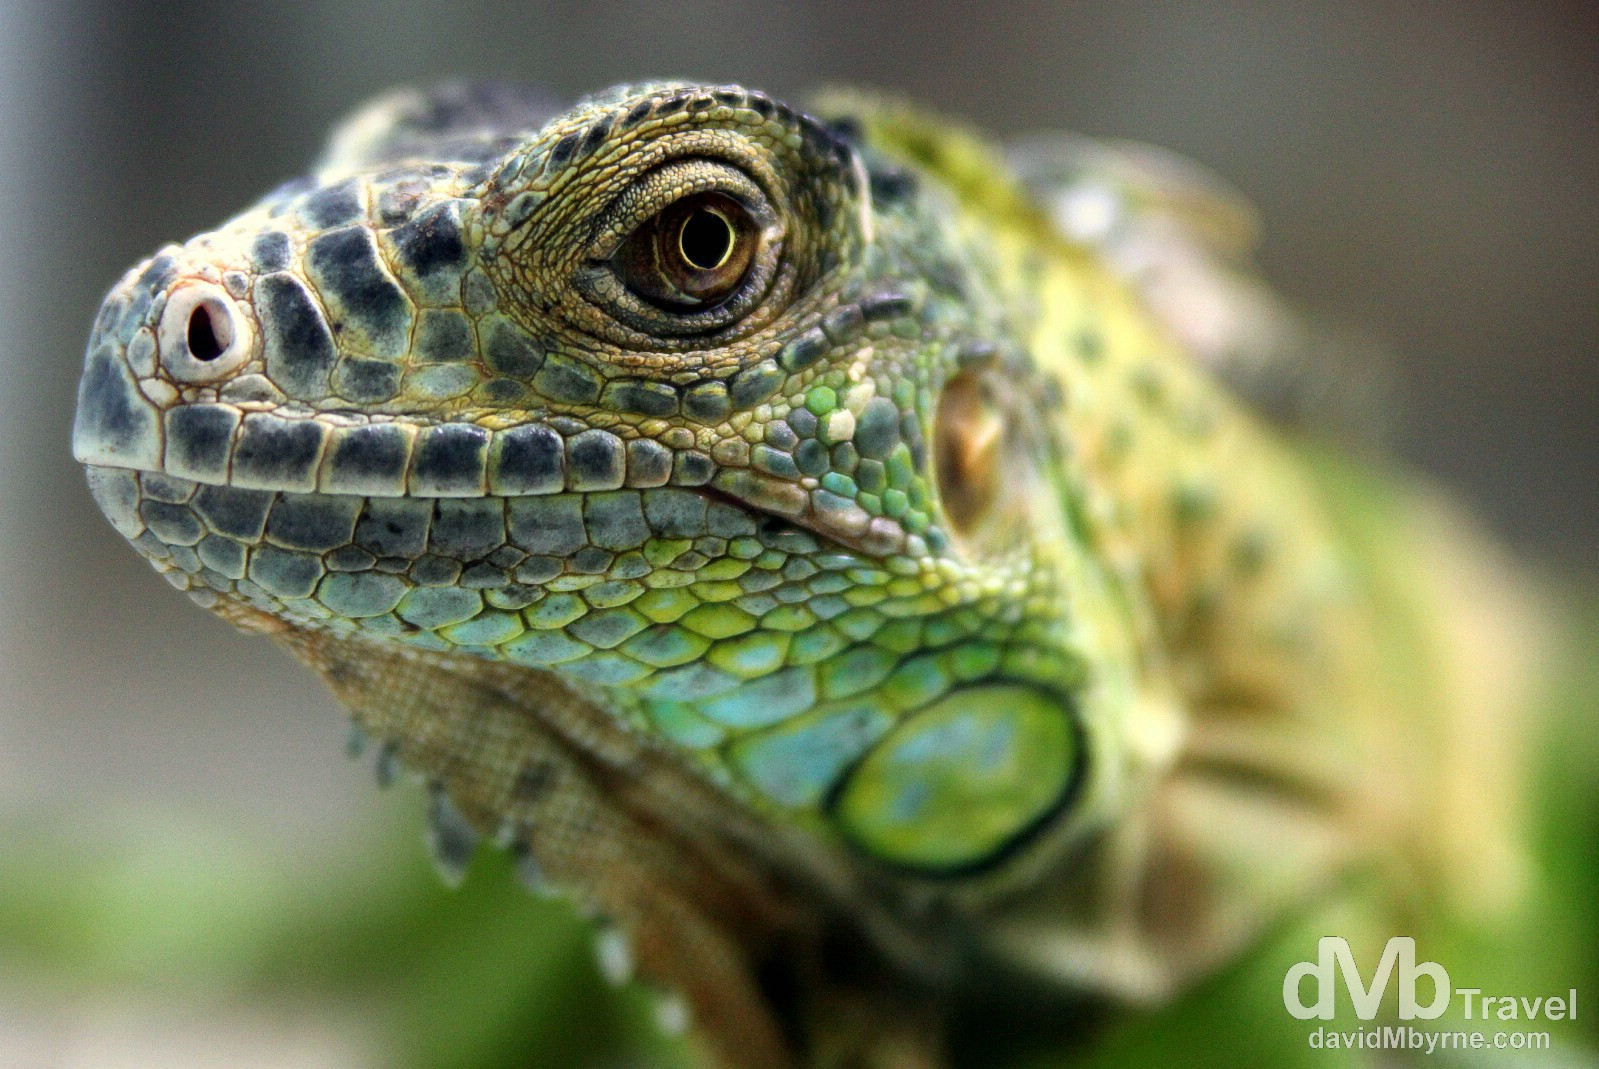 An iguana in the Snake Farm of the Temple of The Azure Cloud (aka The Snake Temple), Penang, Malaysia. March 24th 2012